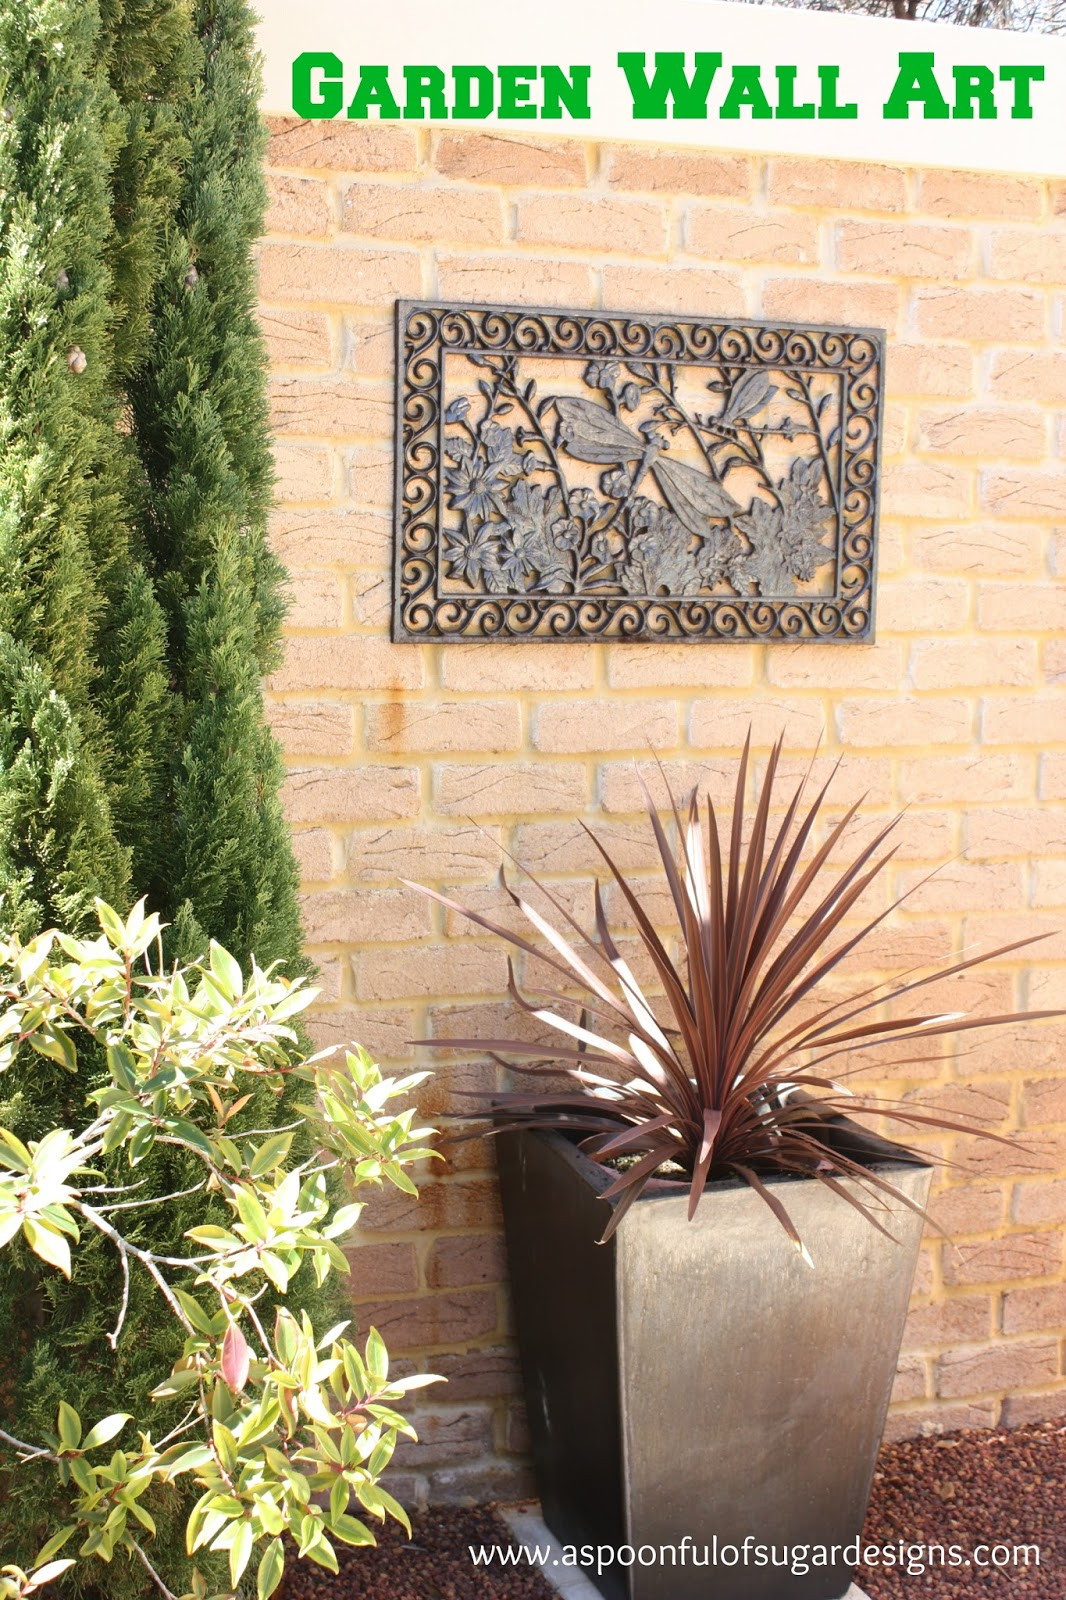 Best ideas about Garden Wall Artwork . Save or Pin Garden Wall Art A Spoonful of Sugar Now.